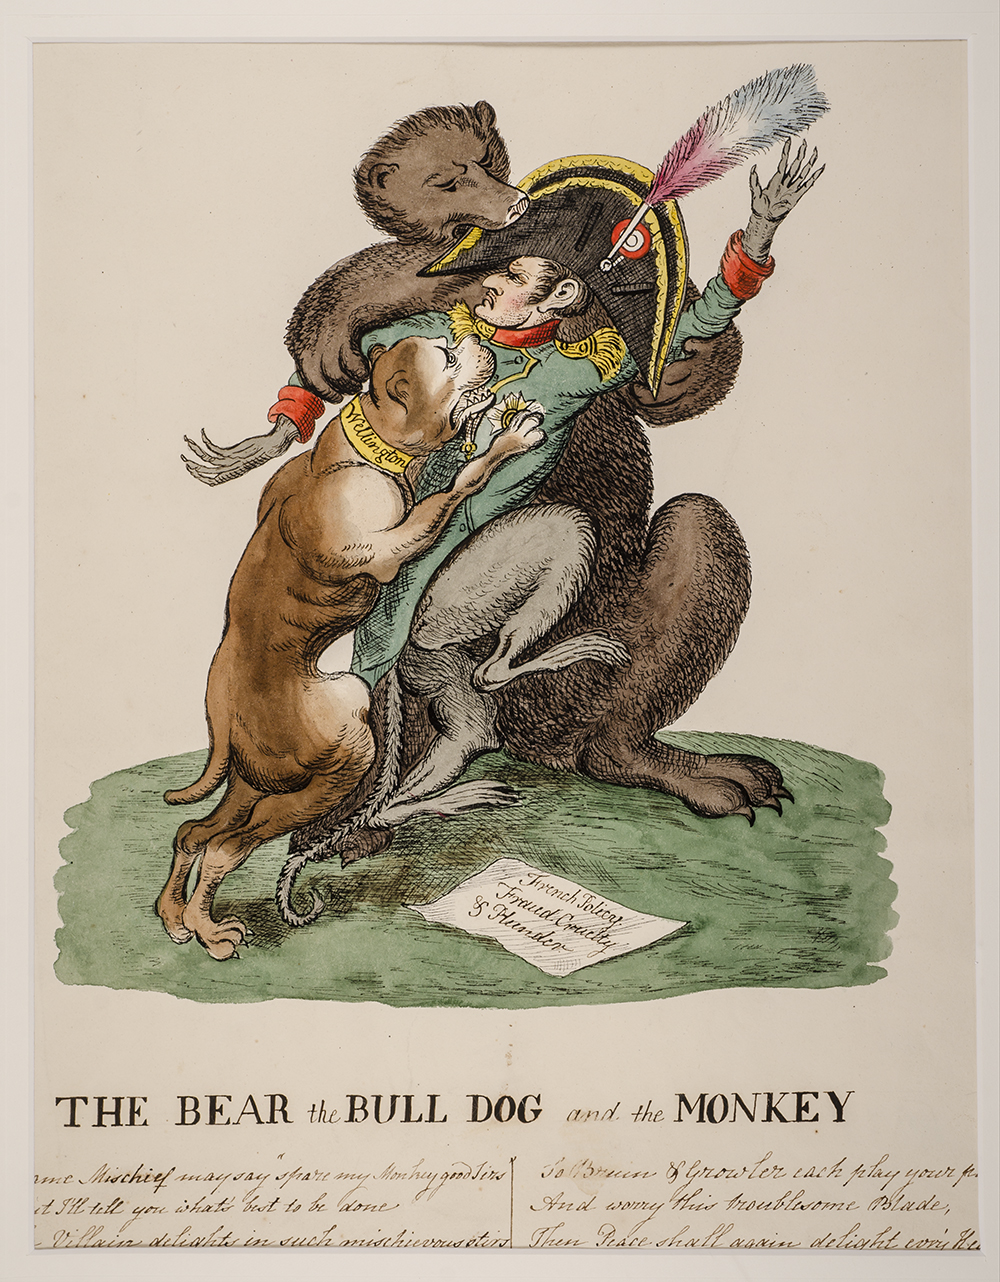 HEATH, WILLIAM, (AFTER) - The Bear the Bull Dog and the Monkey